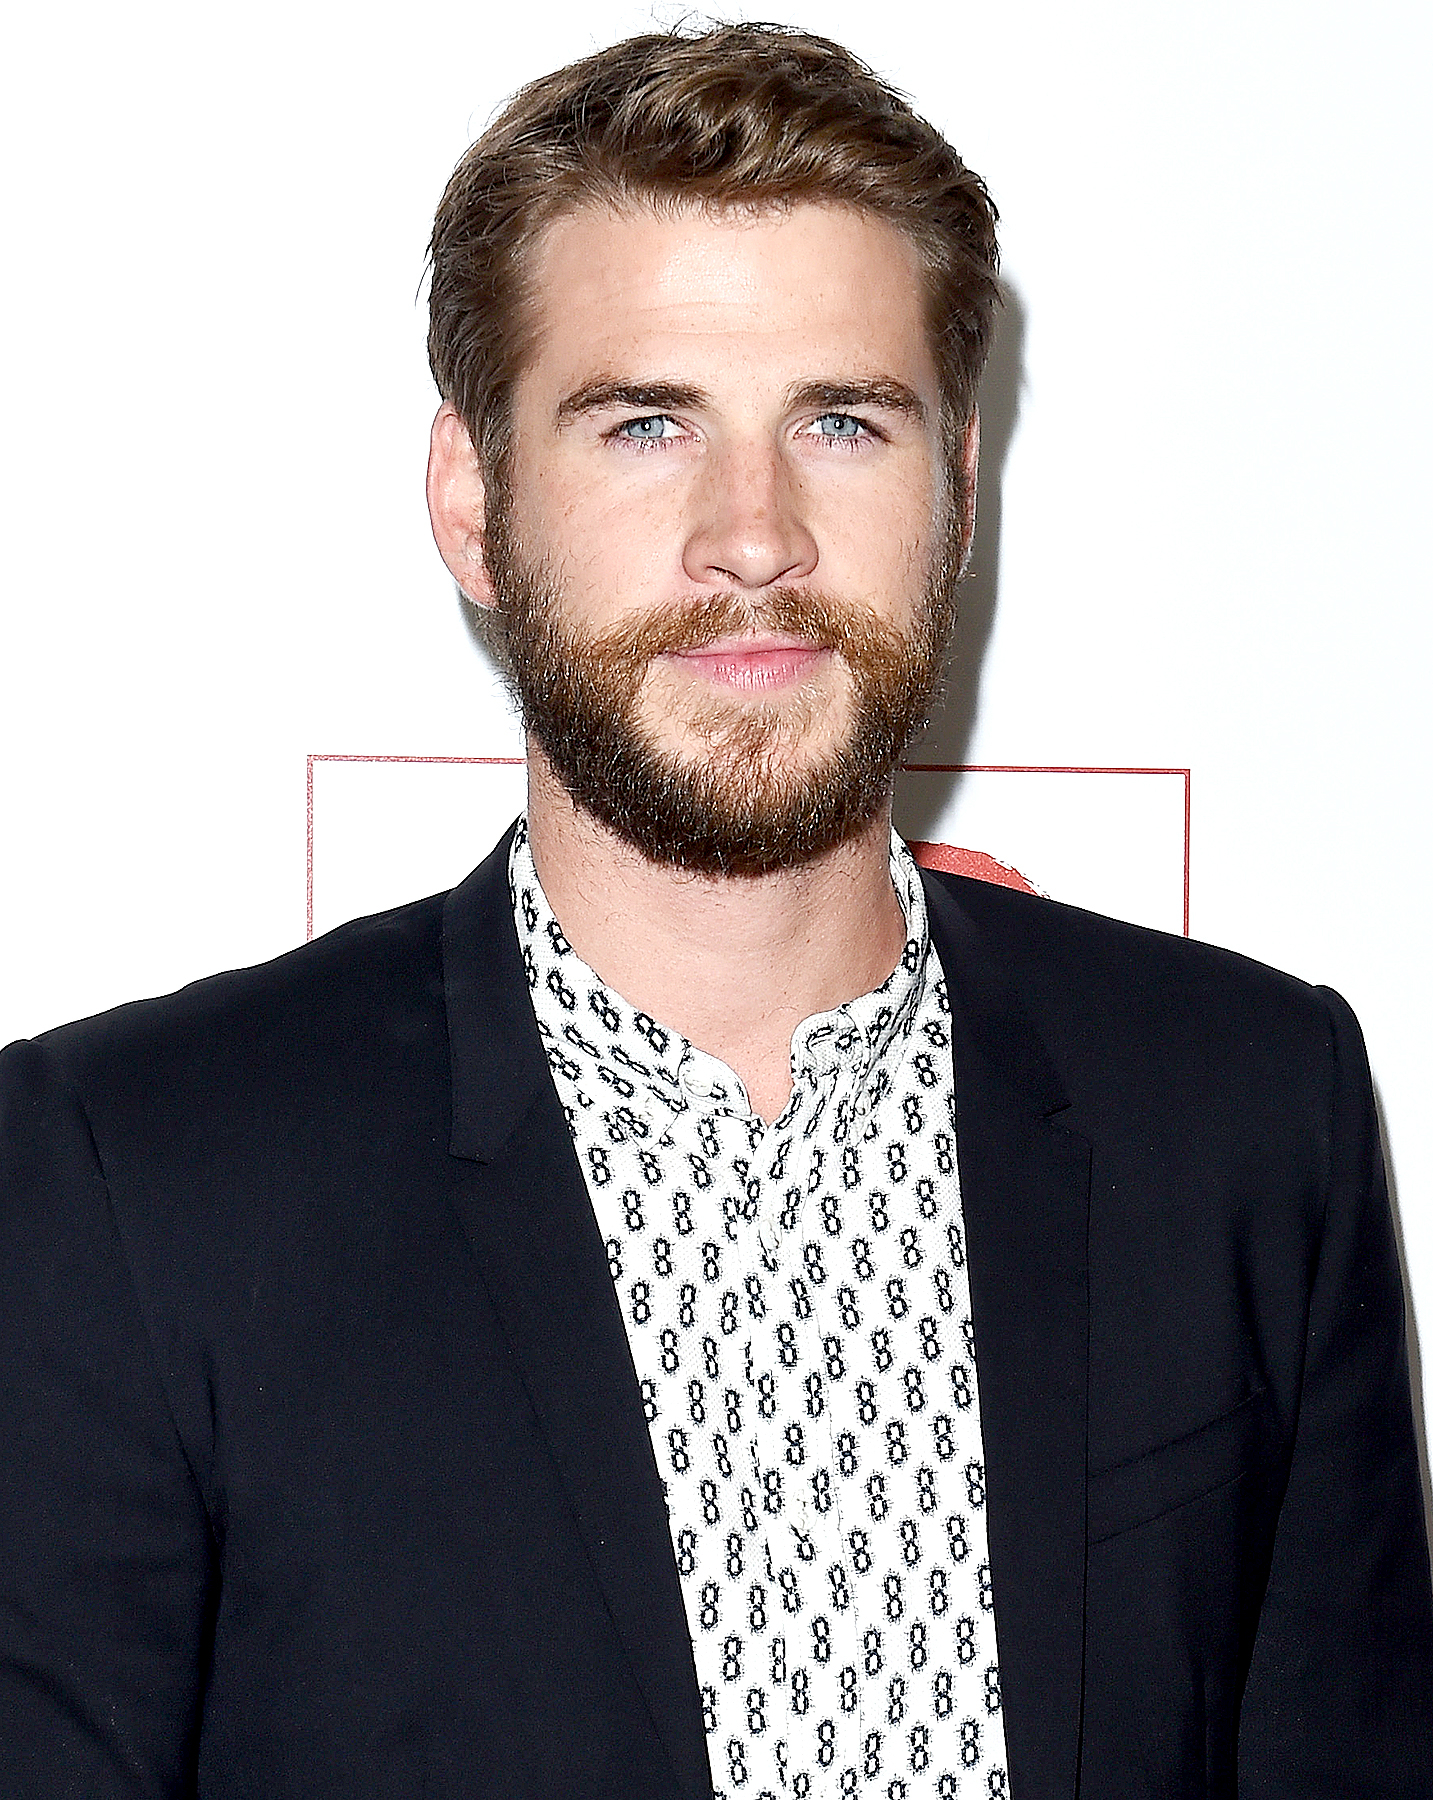 Liam Hemsworth arrives at the 10th Annual GO Campaign Gala at Manuela on November 5, 2016 in Los Angeles, California.